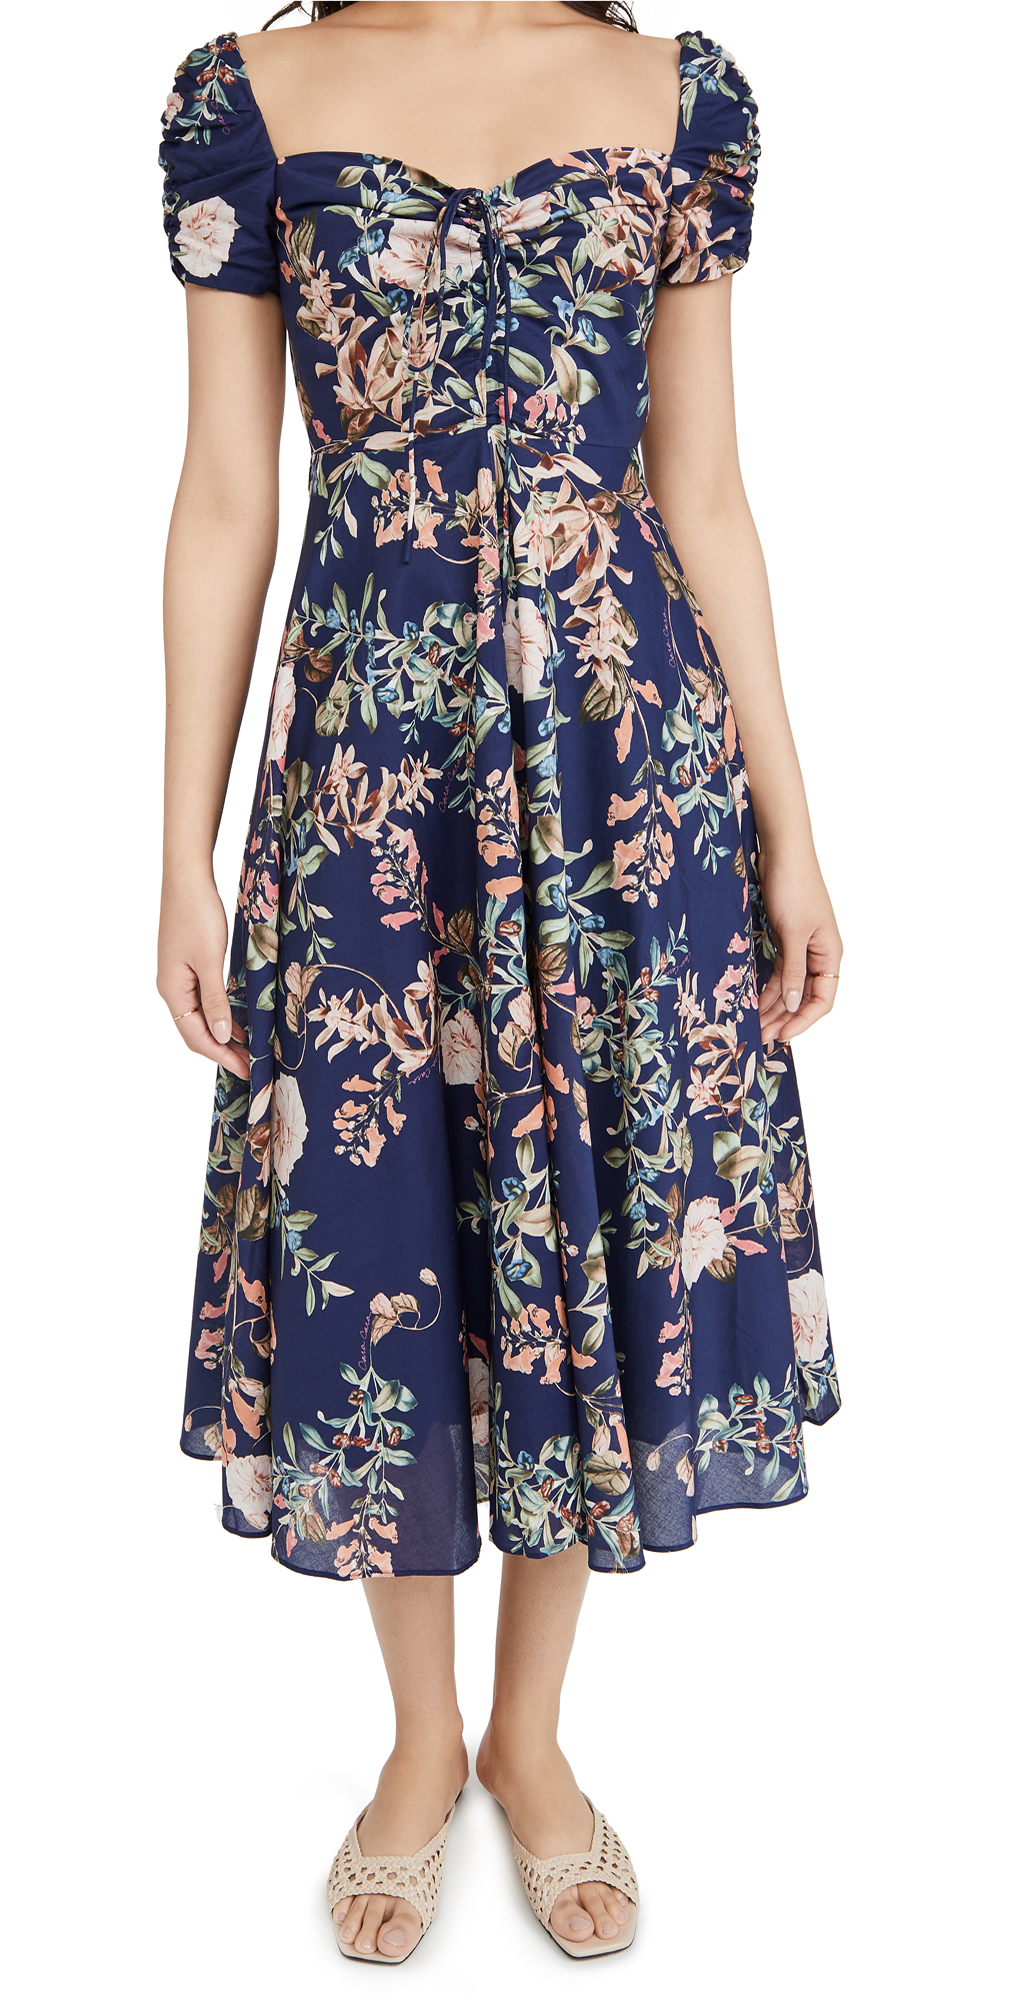 Cara Cara Bellport Dress